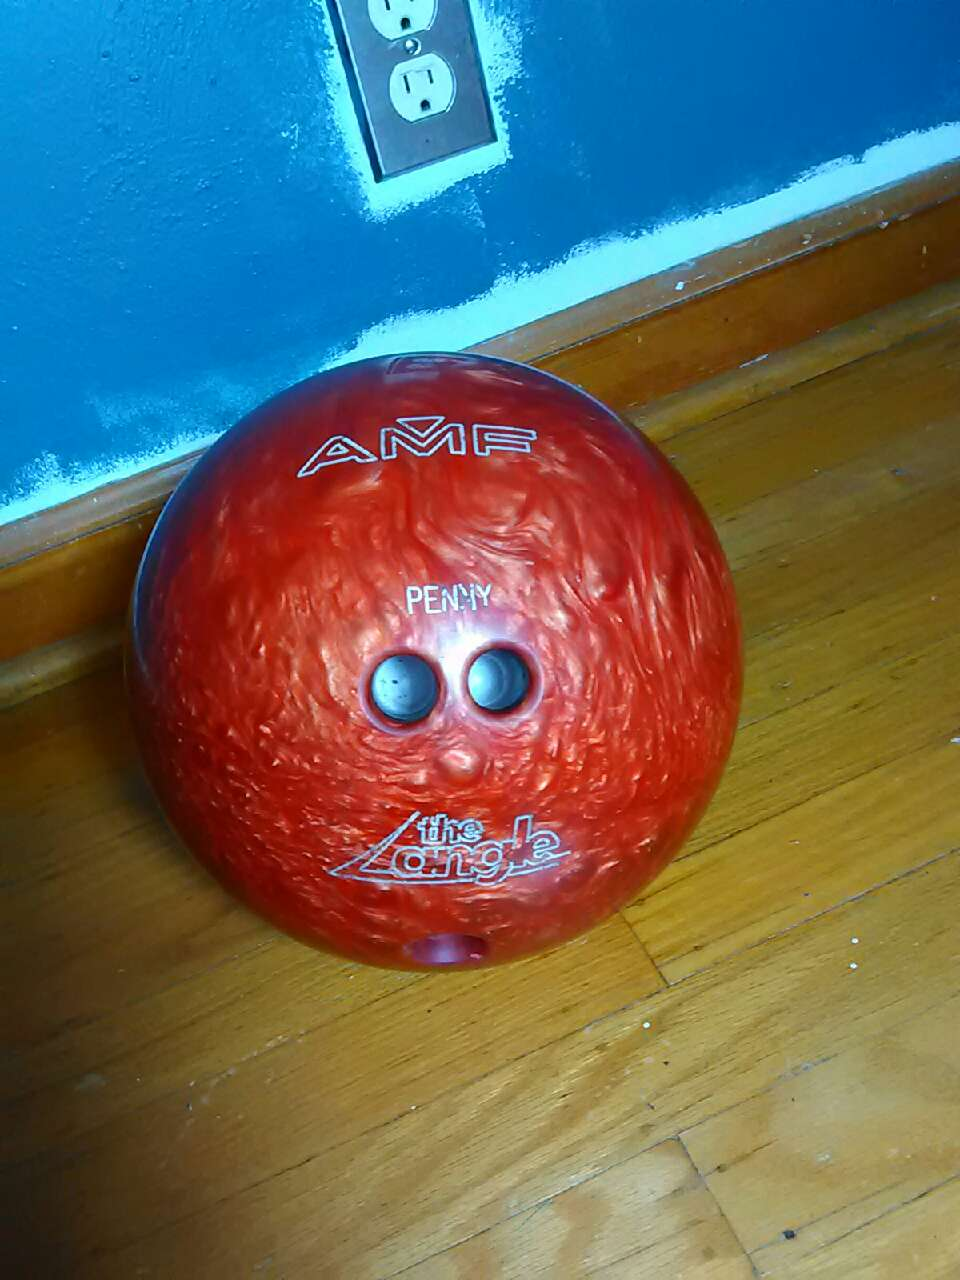 Letgo Amf The Angle Left Hand Bowling In Irvington In